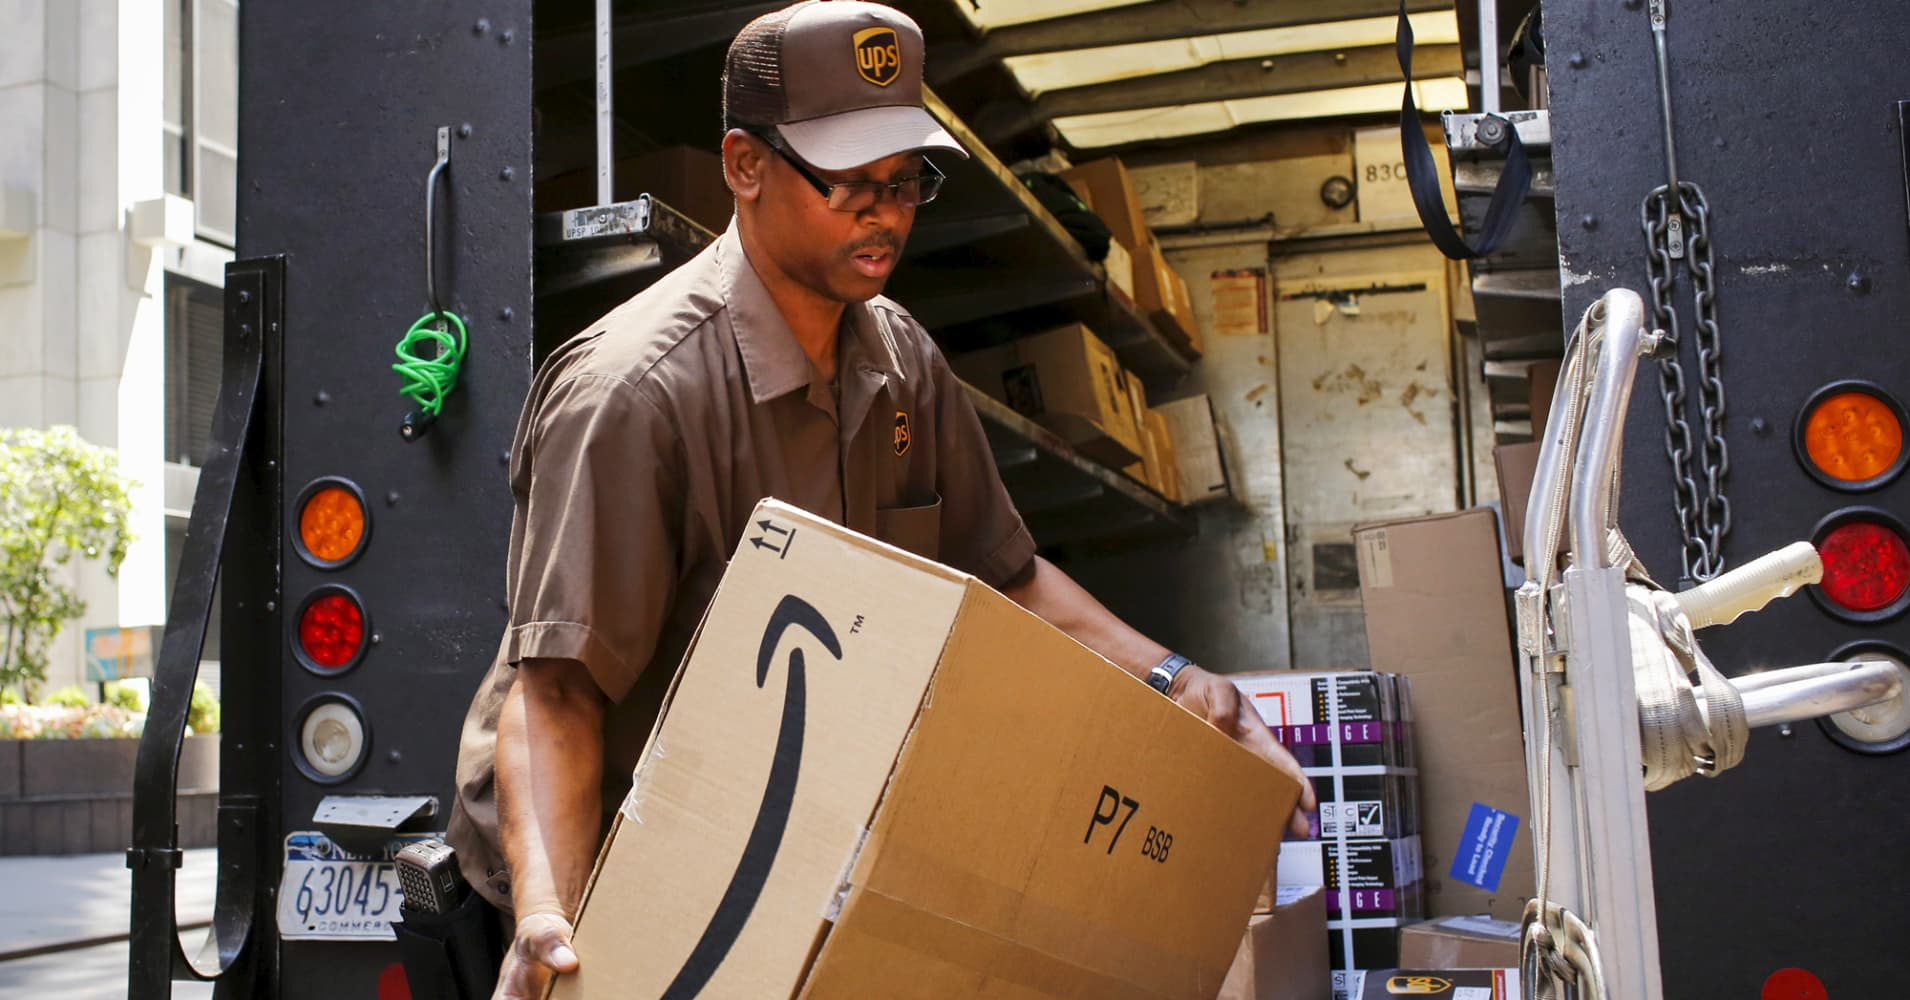 It's war: Target, eBay and other retailers pile on deals to compete ahead of Amazon Prime Day